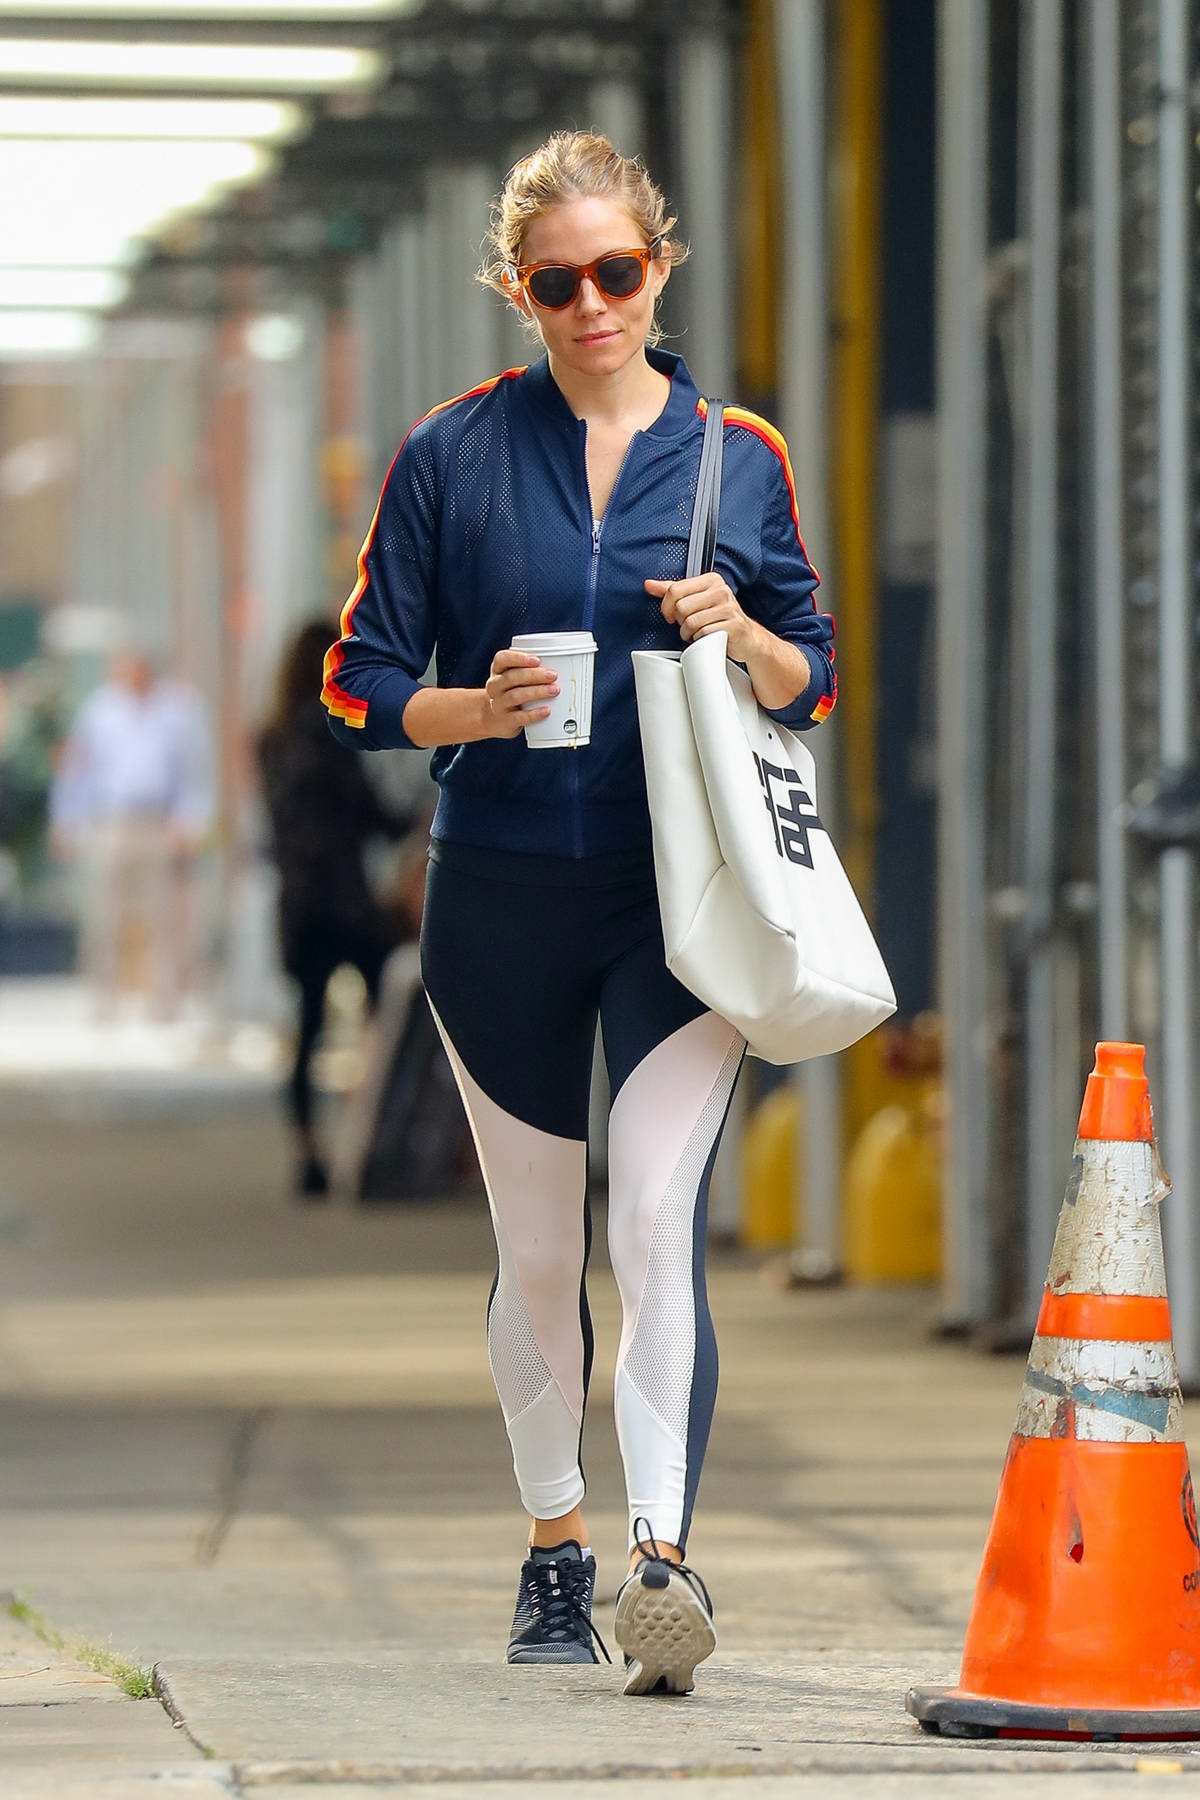 Sienna Miller rocks blue and white activewear while out for her morning coffee in New York City